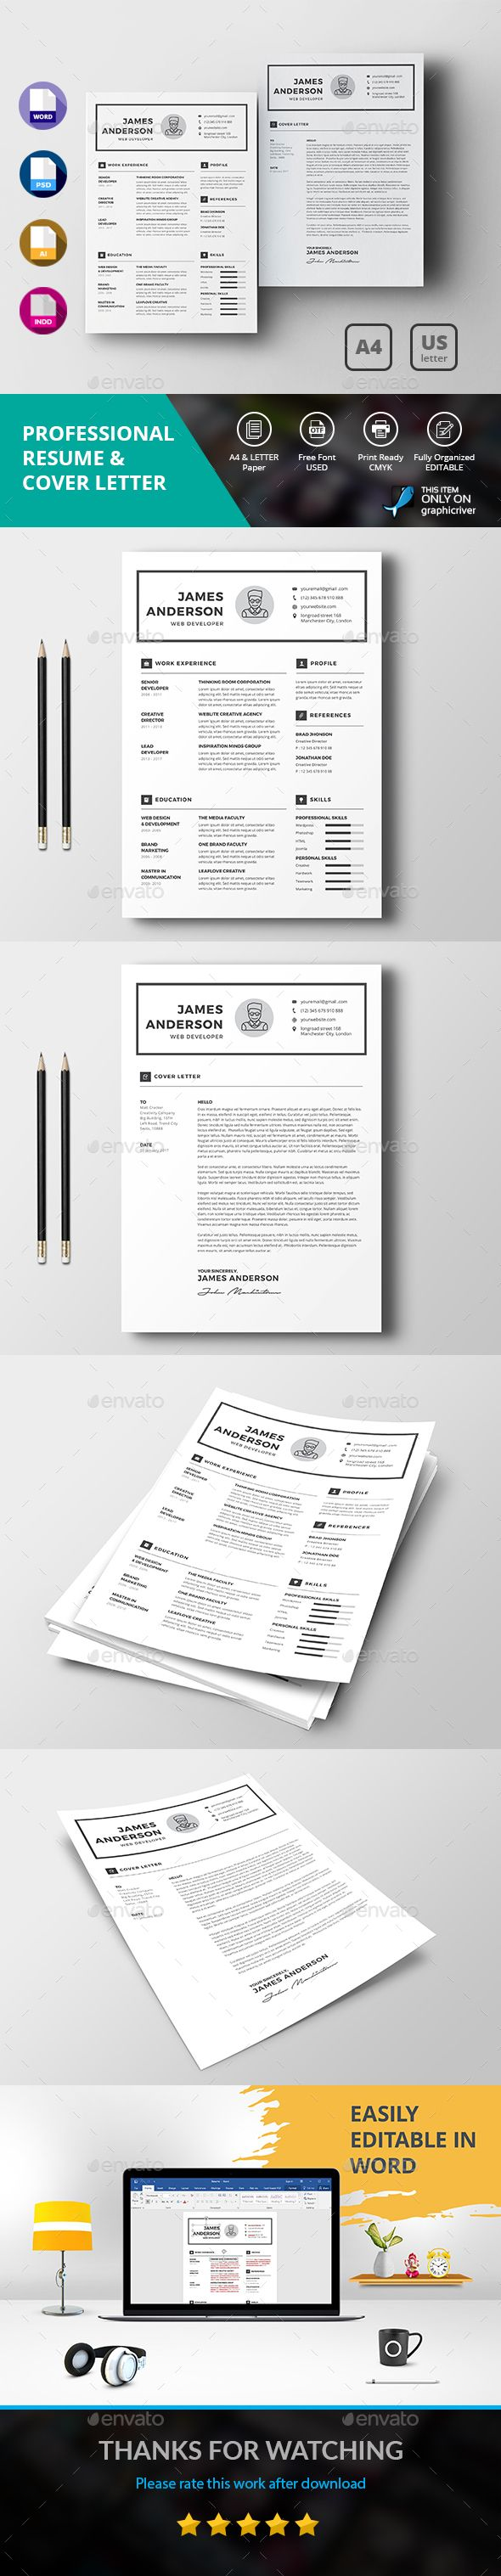 51 best Resumes images on Pinterest | Curriculum, Resume and Resume cv